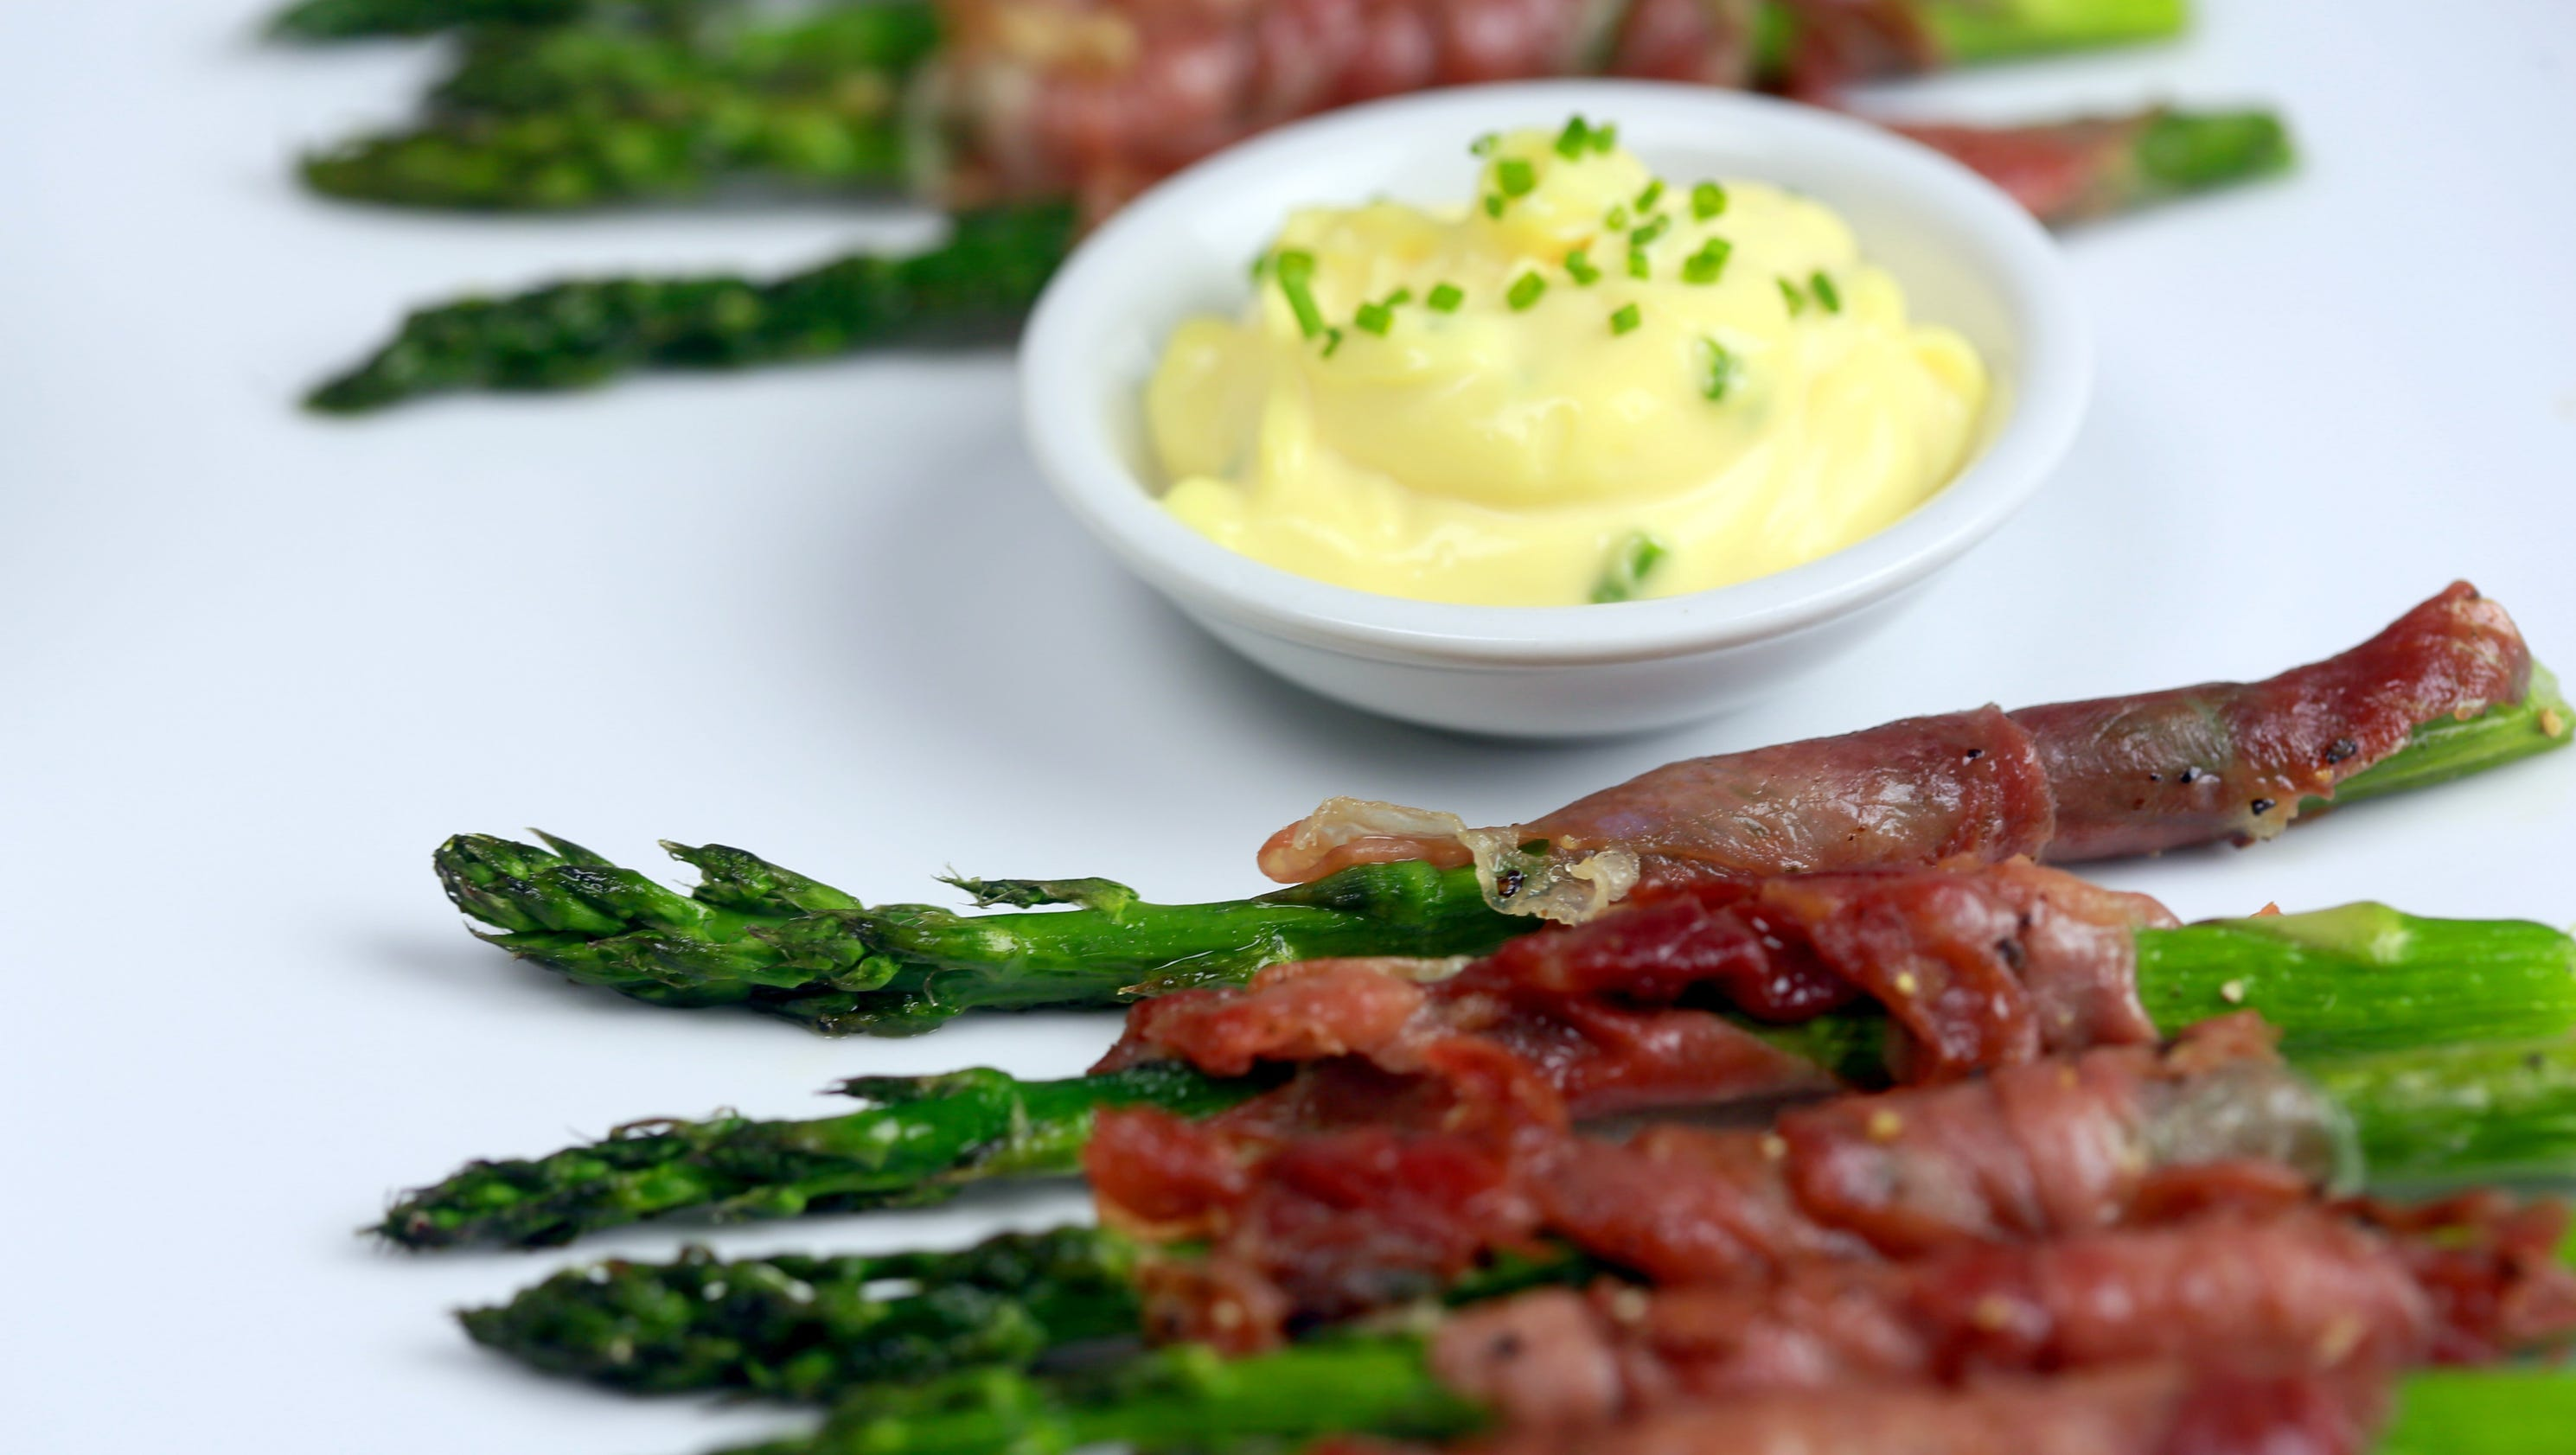 Food Network Side Dishes For Easter